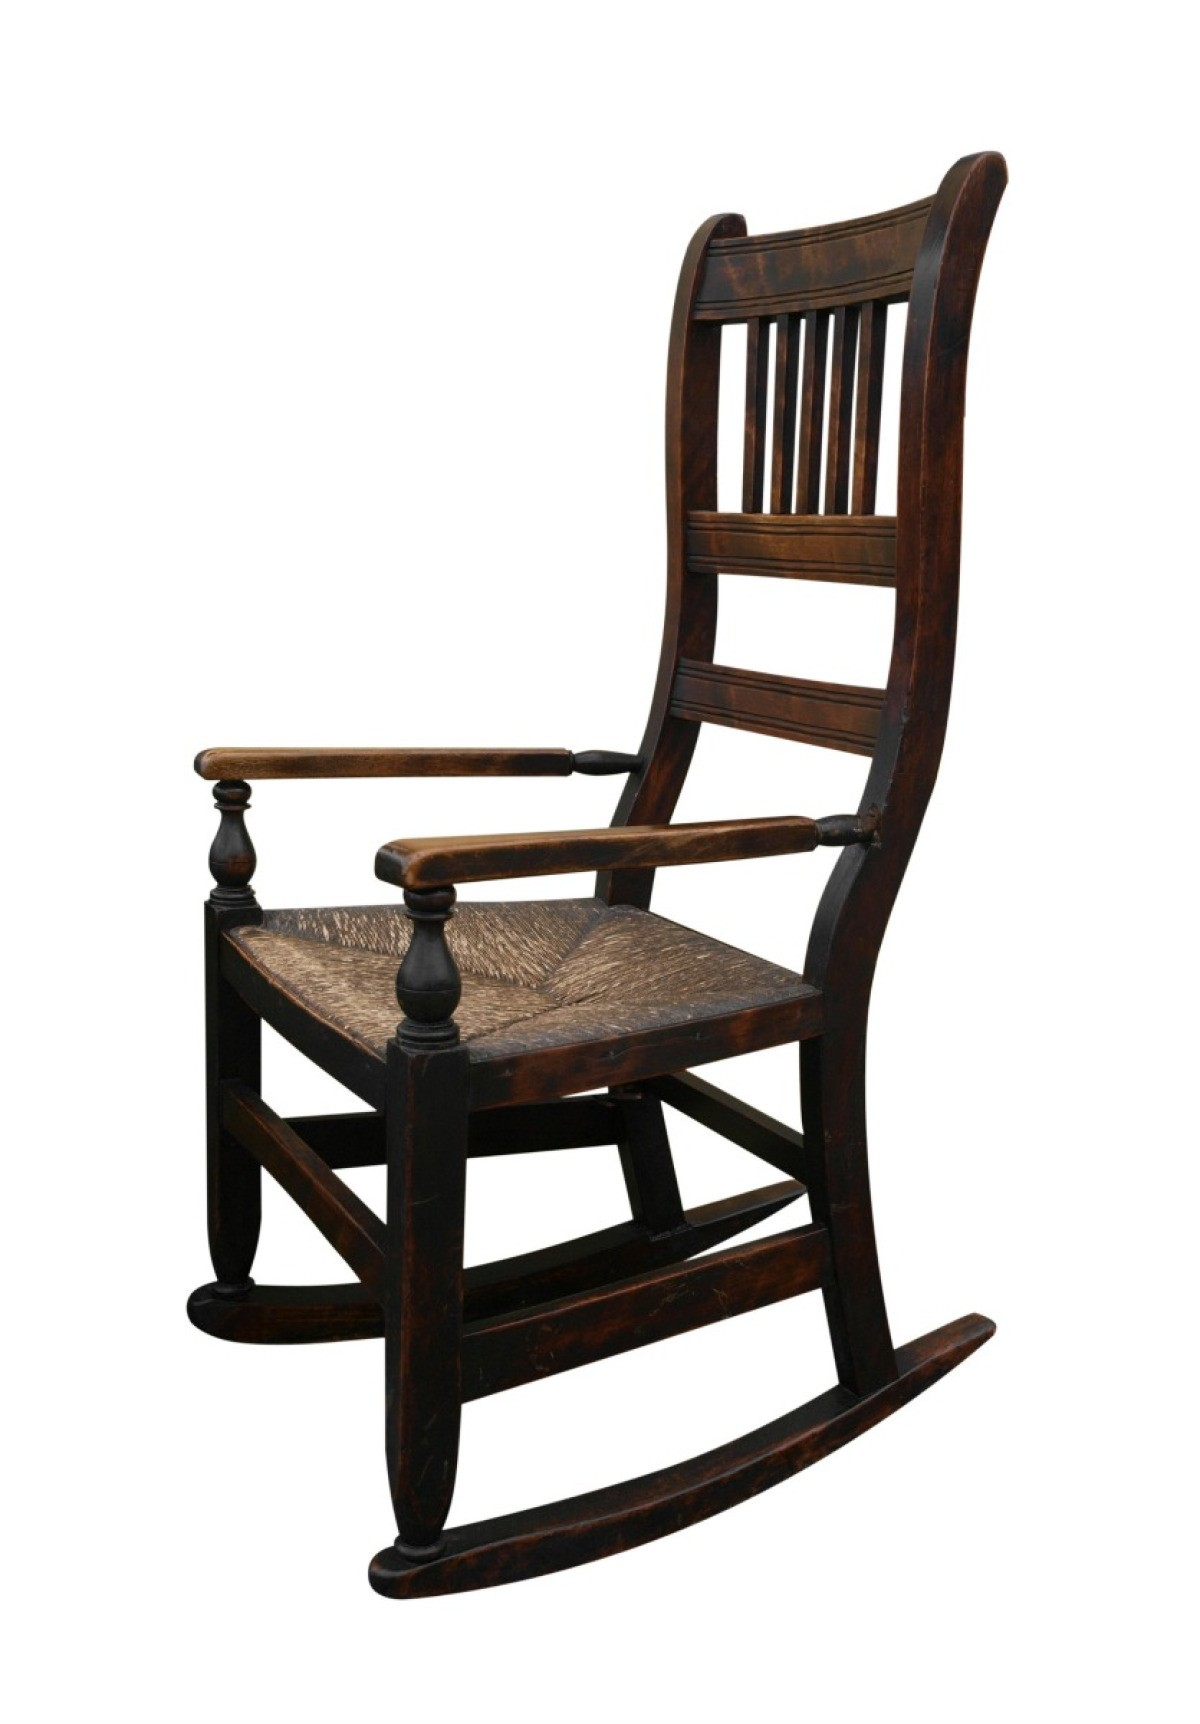 Best Place To Buy Rocking Chairs Repairing A Rocking Chair Thriftyfun